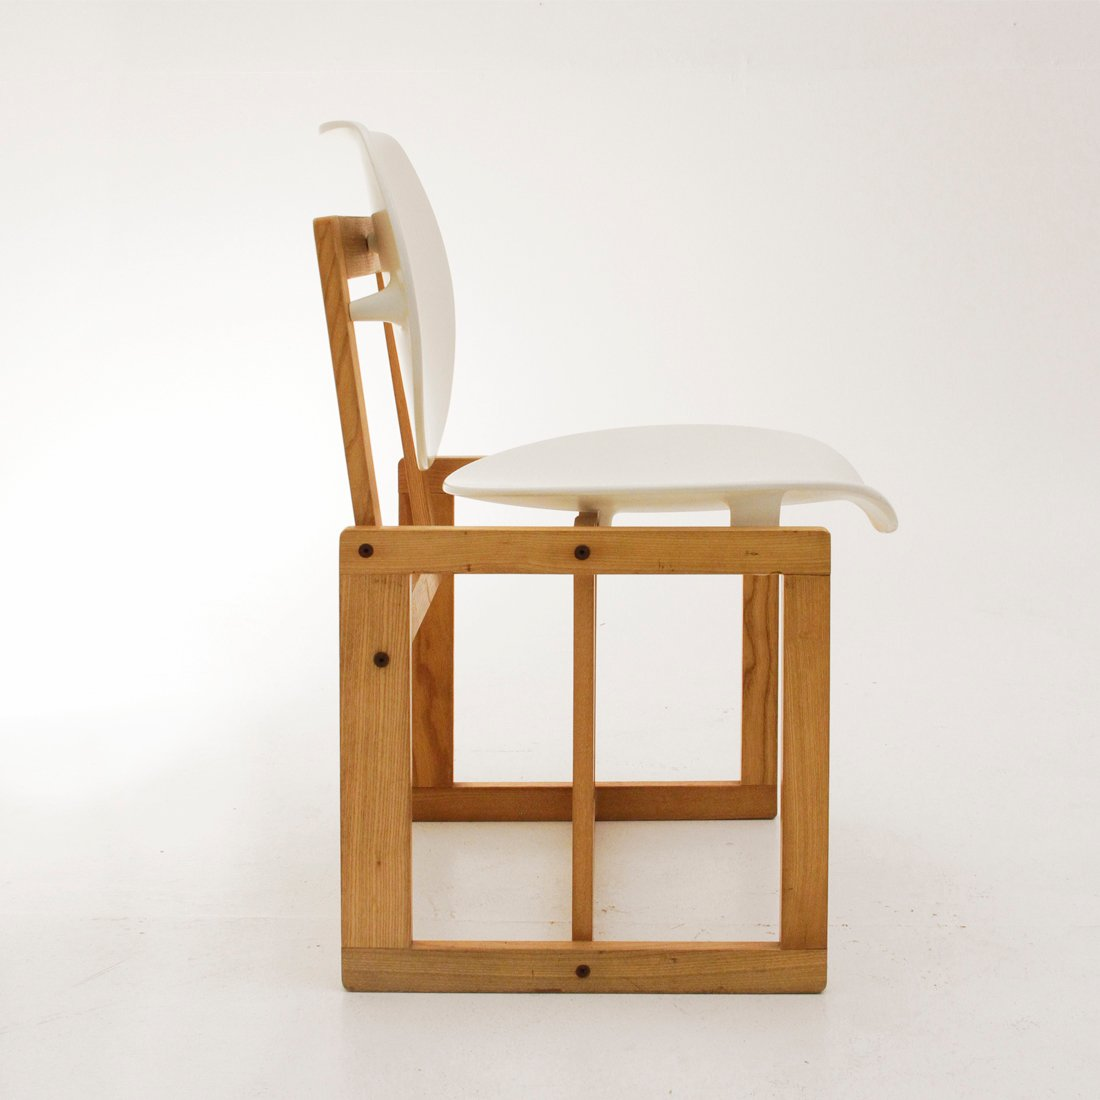 Italian wood furniture French Price Per Piece Dhgate Vintage Italian Wood And White Plastic Chair 1970s For Sale At Pamono